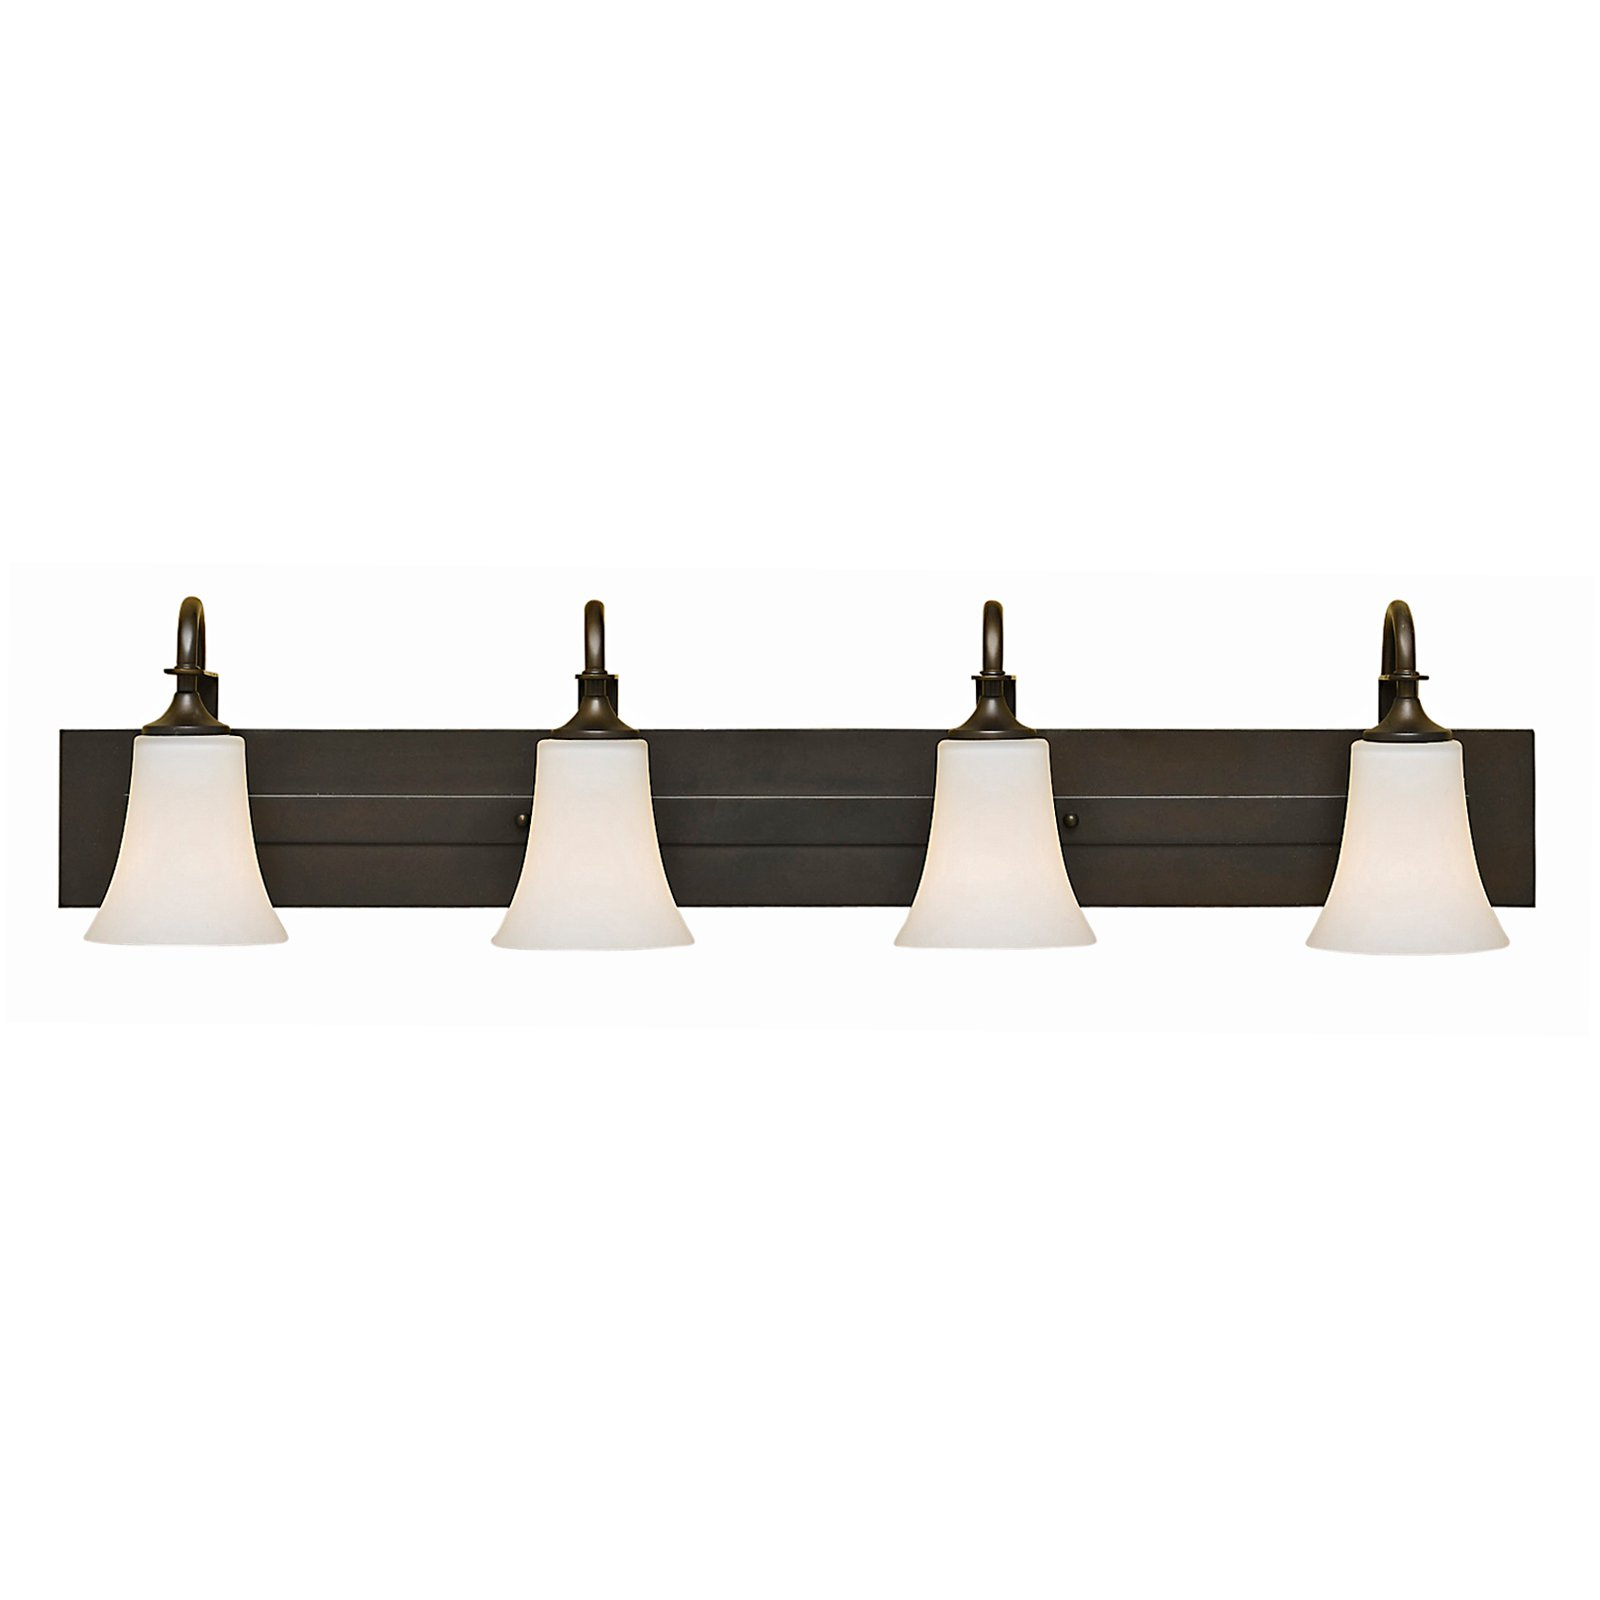 Feiss Barrington Bathroom Wall Light 37W in. Oil Rubbed Bronze by Murray Feiss